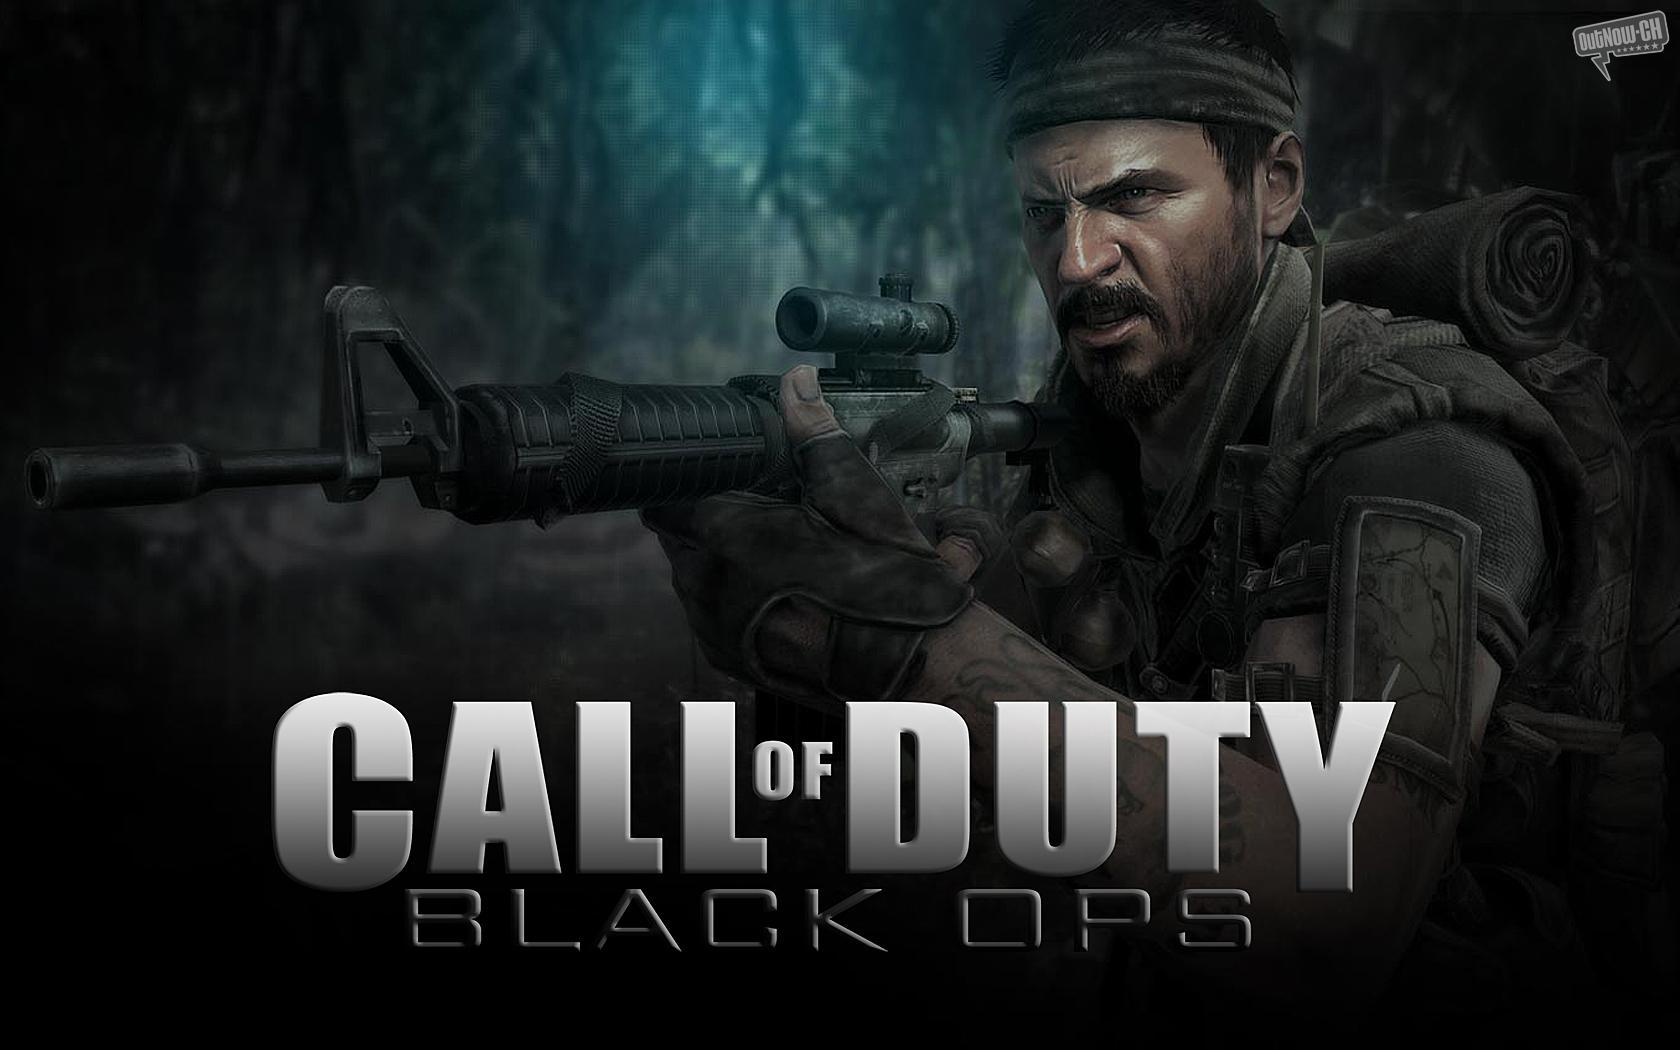 of Duty Black OPS wallpapers Call of Duty Black OPS stock photos 1680x1050